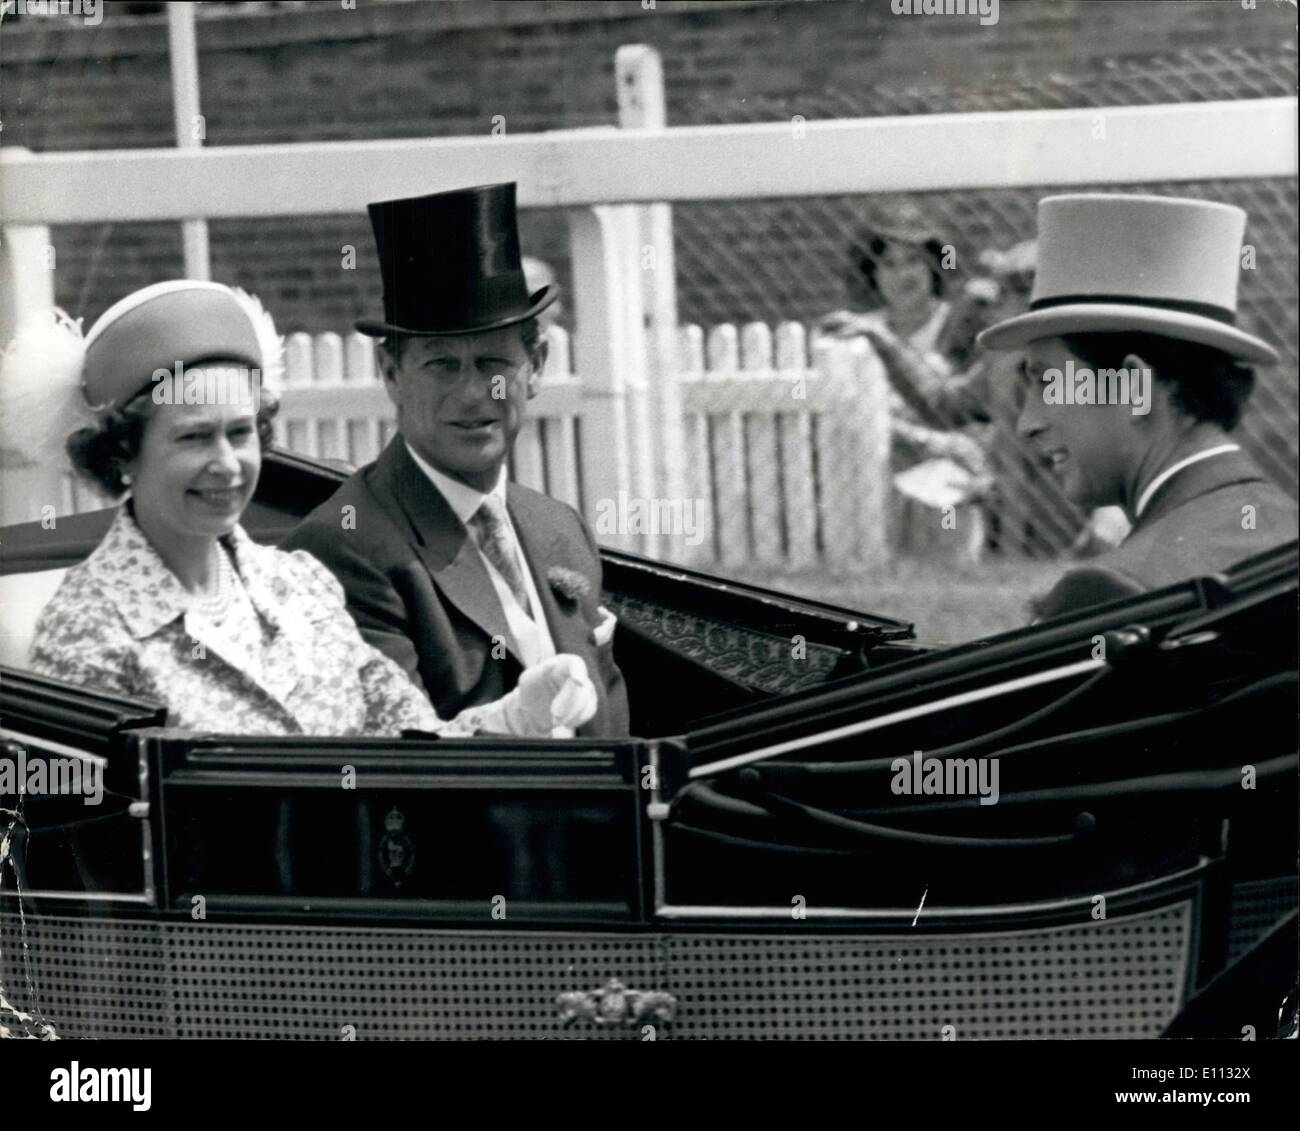 Jun. 06, 1975 - THE FIRST DAY OF THE ROYAL ASCOT MEETING PHOTO SHOWS:- The Queen in blue and white print outfit and matchig hat - Stock Image